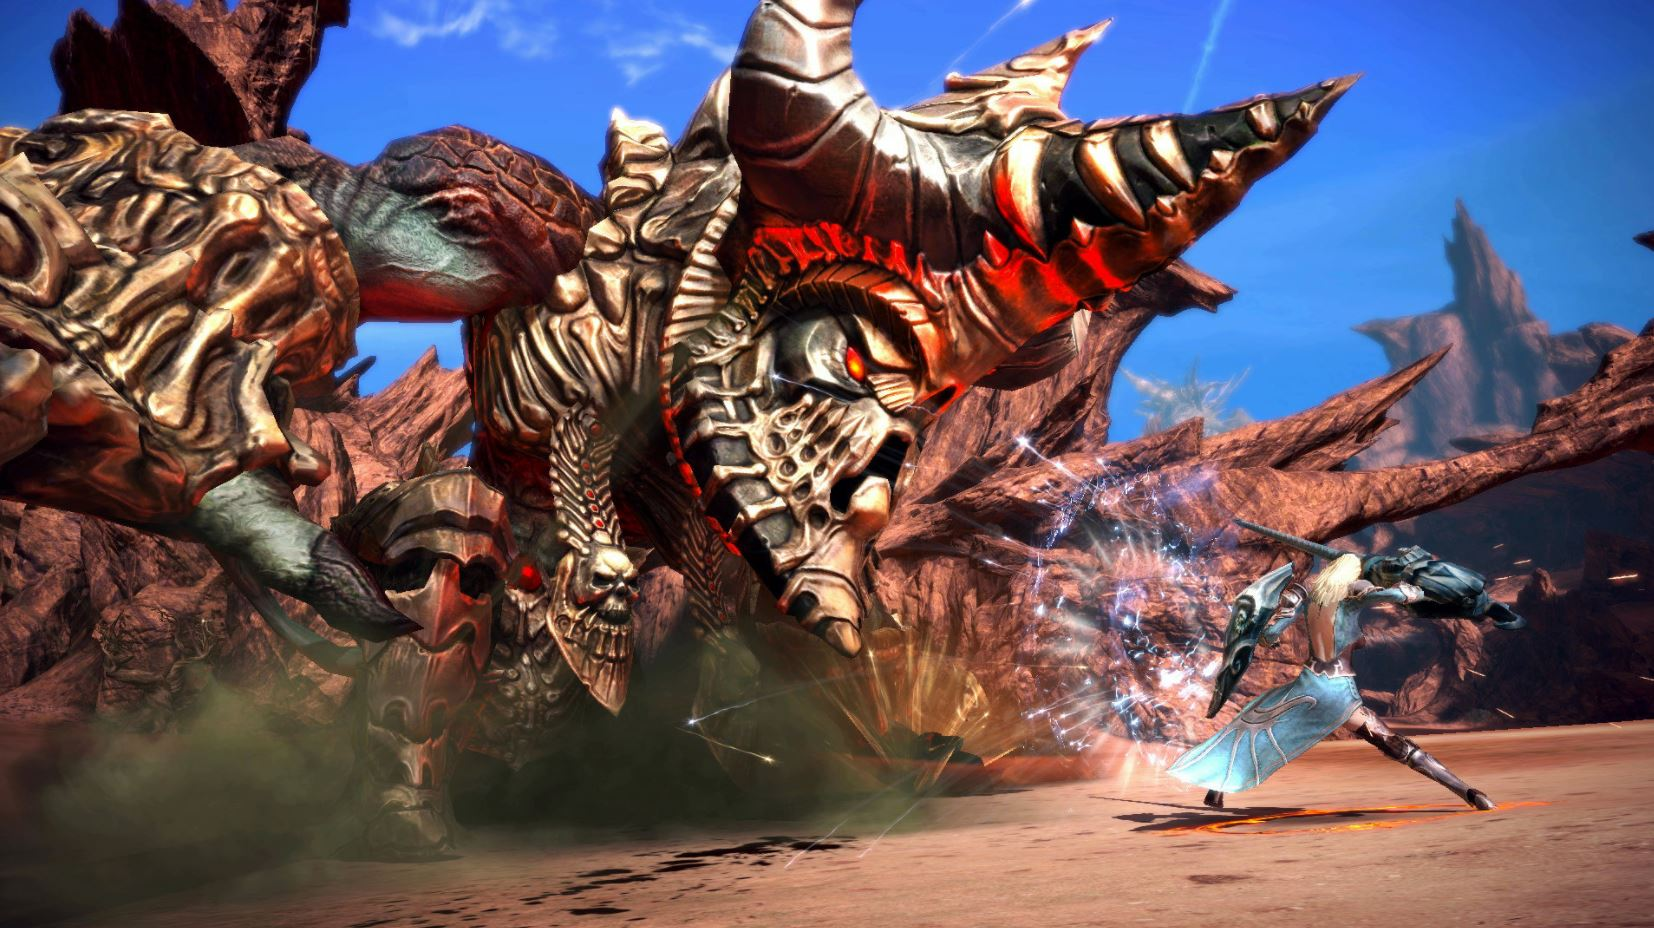 tera-is-getting-a-ps5-release-in-november-with-cross-play-functionality